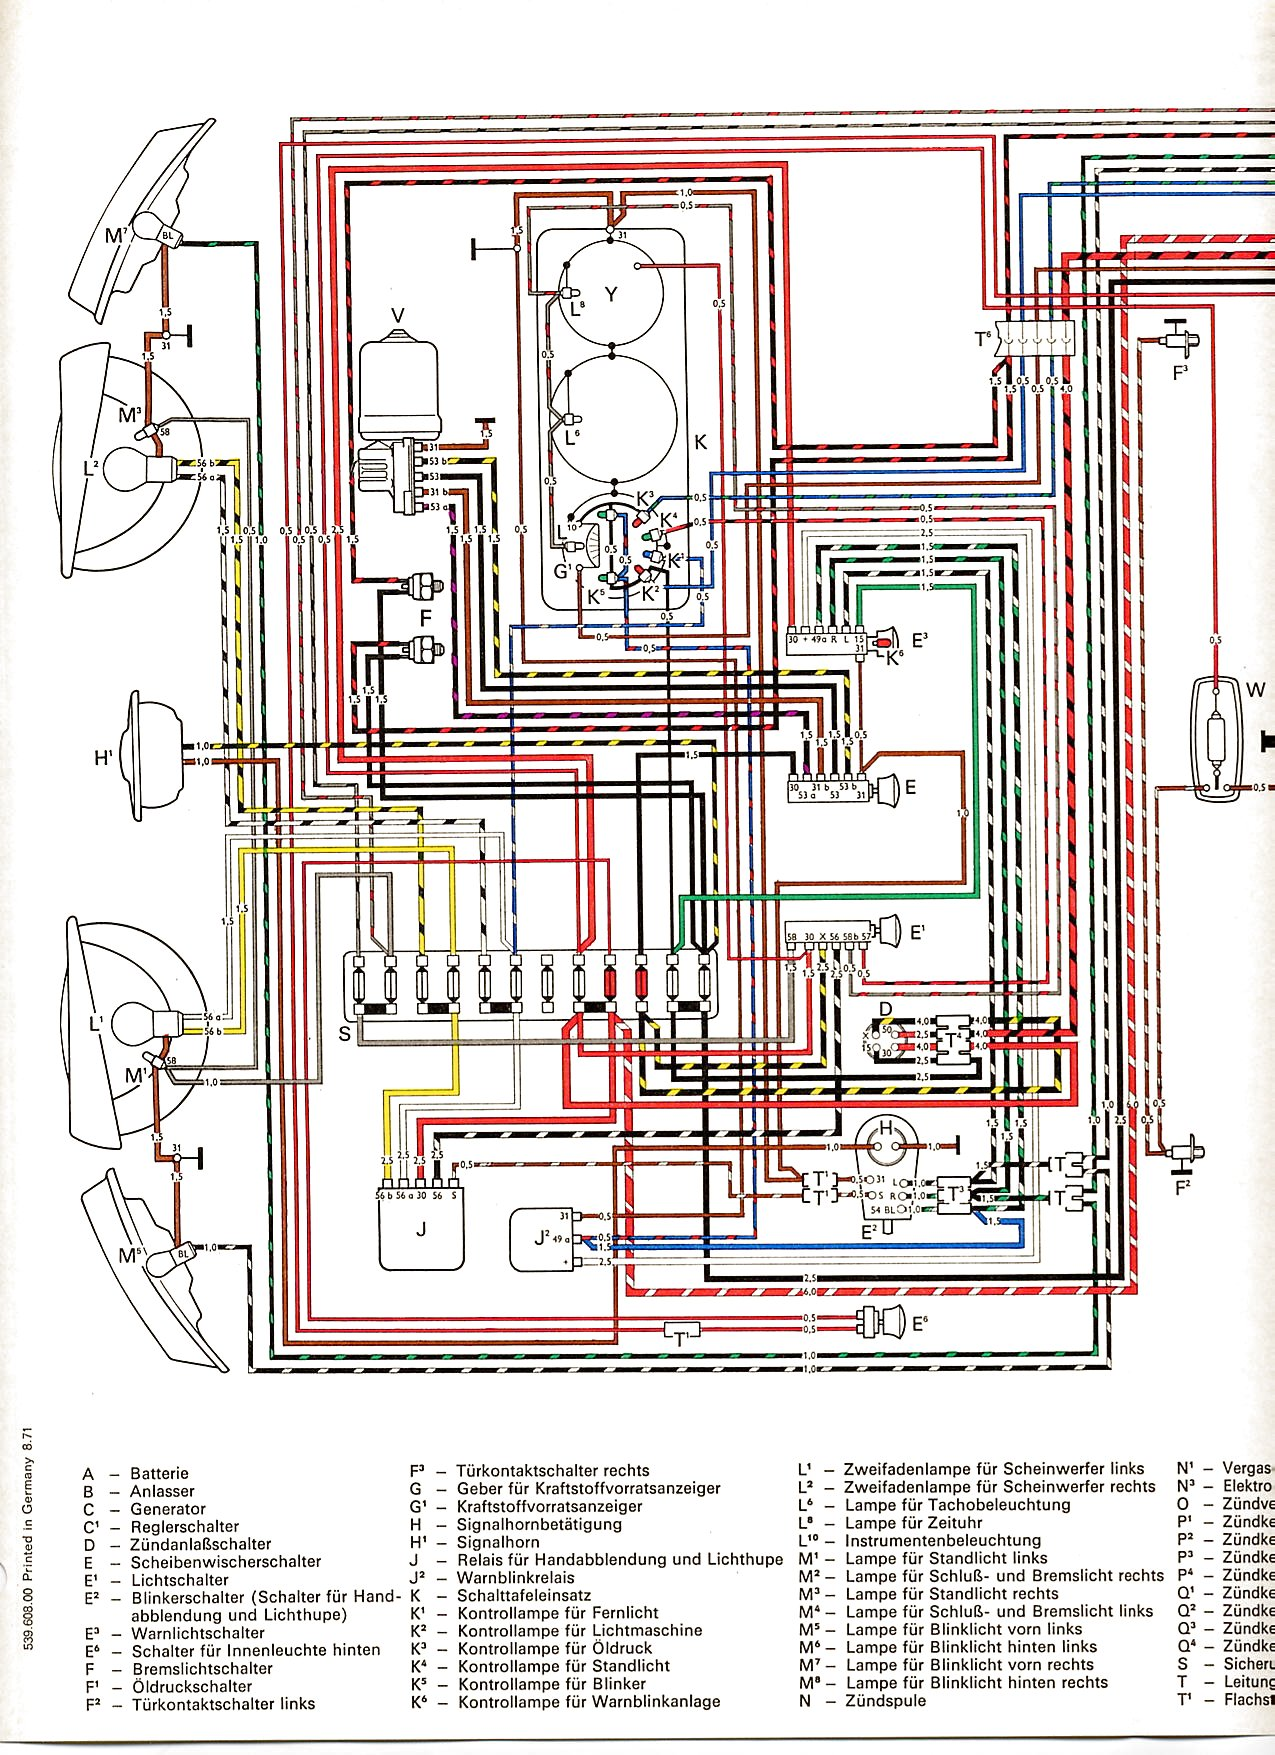 volkswagen type 2 wiring harness schematic diagramvintagebus com vw bus (and other) wiring diagrams ford mustang wiring harness de,